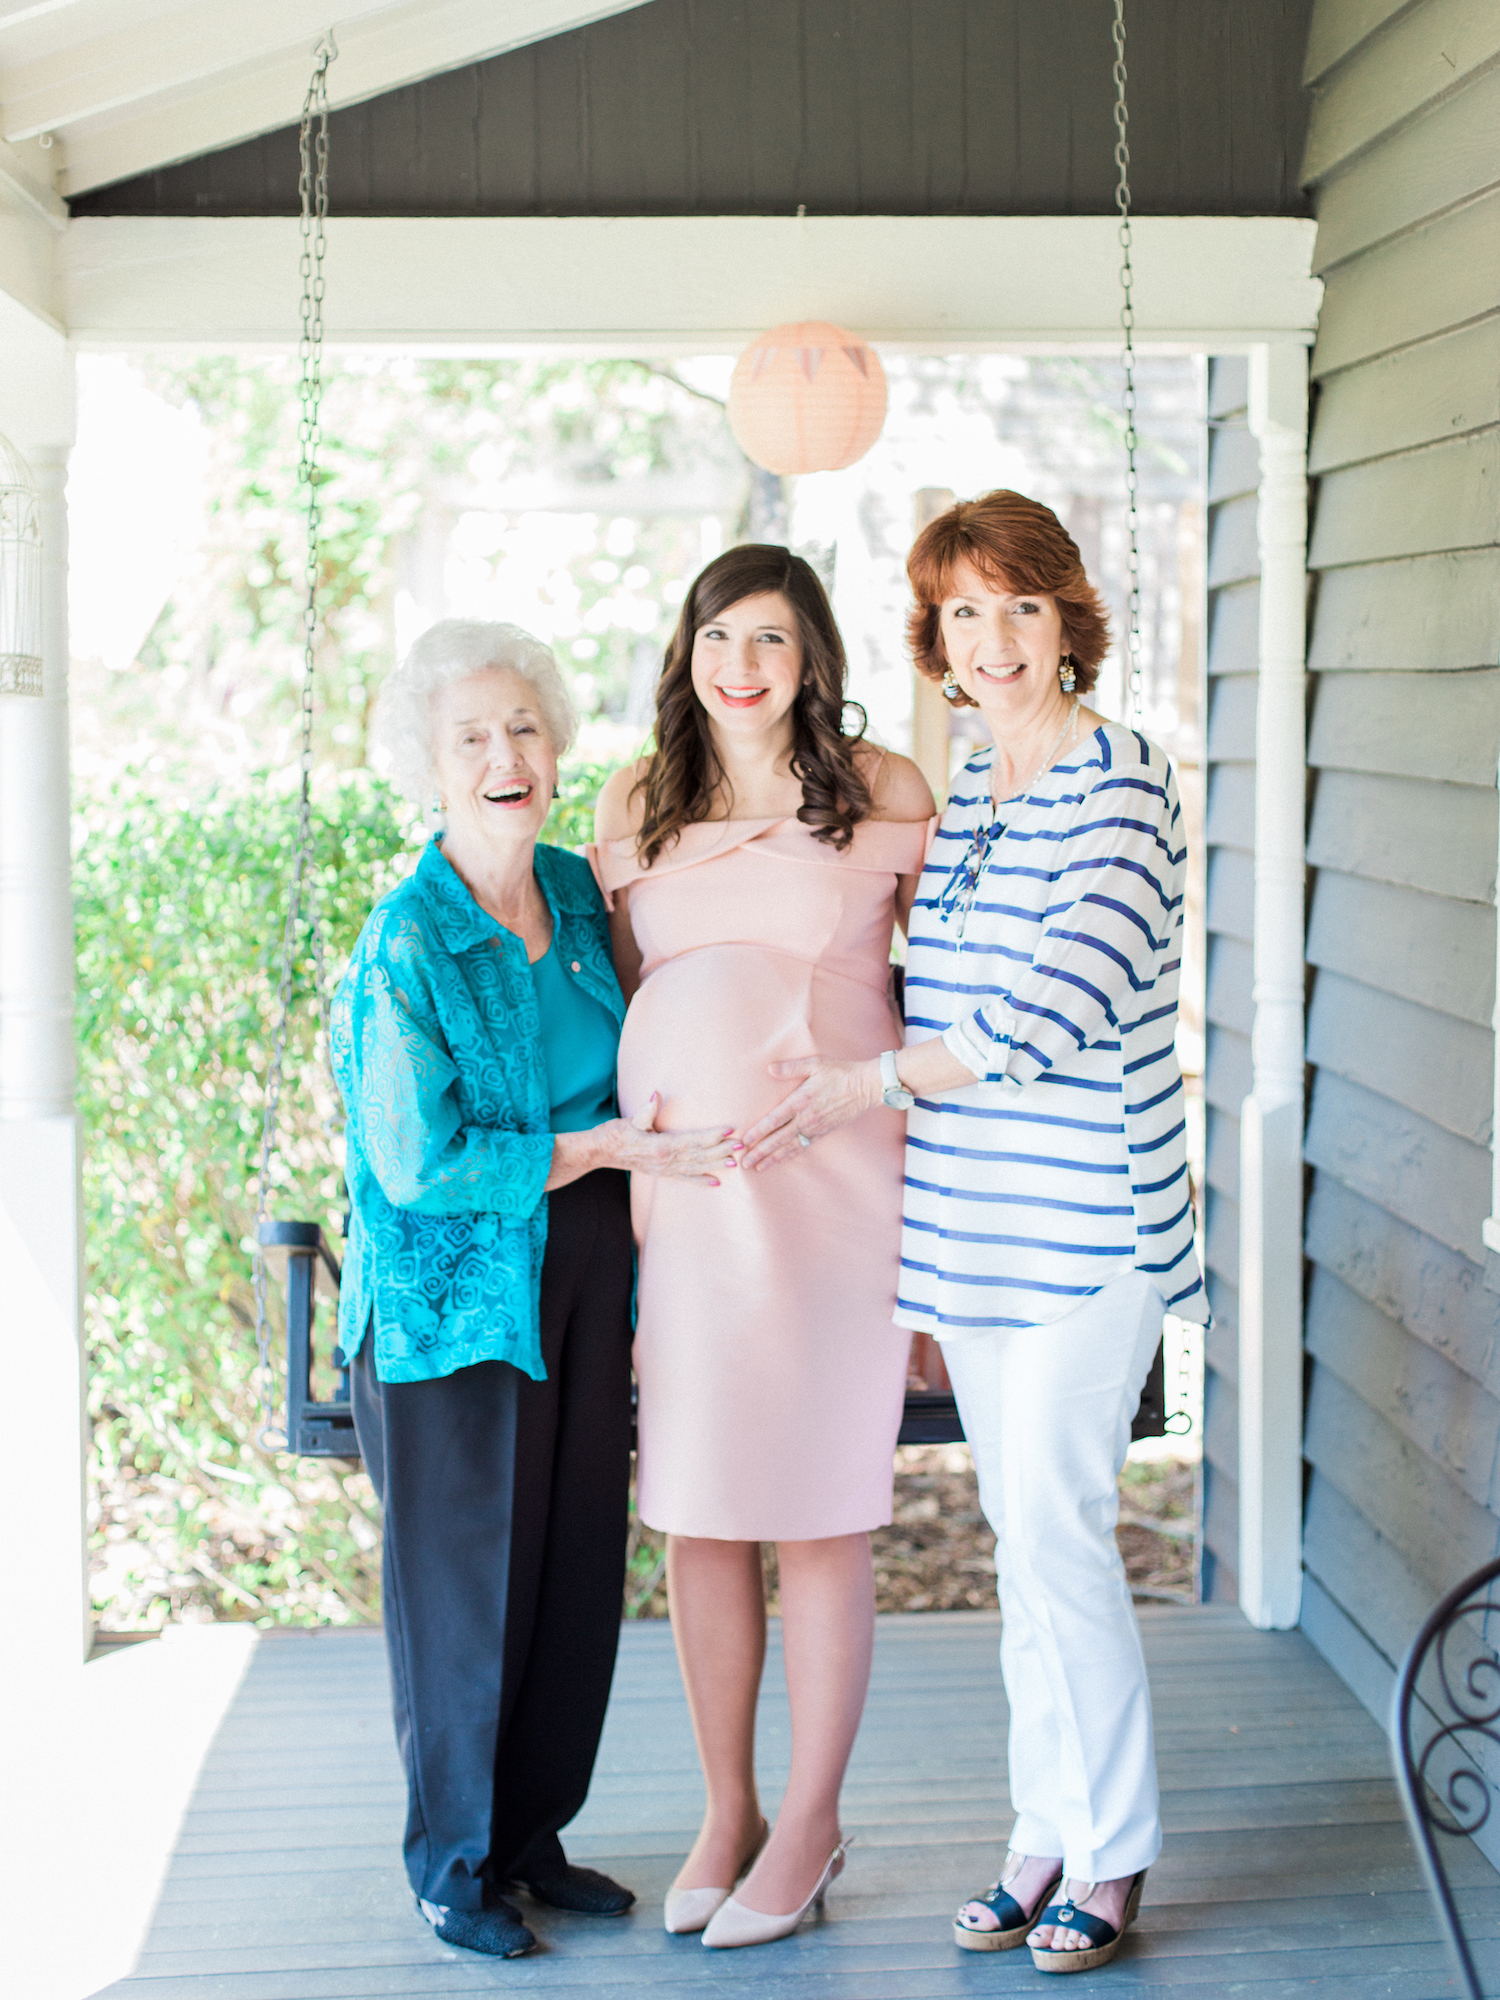 Three generations of mothers at a baby shower. Pink maternity dress.